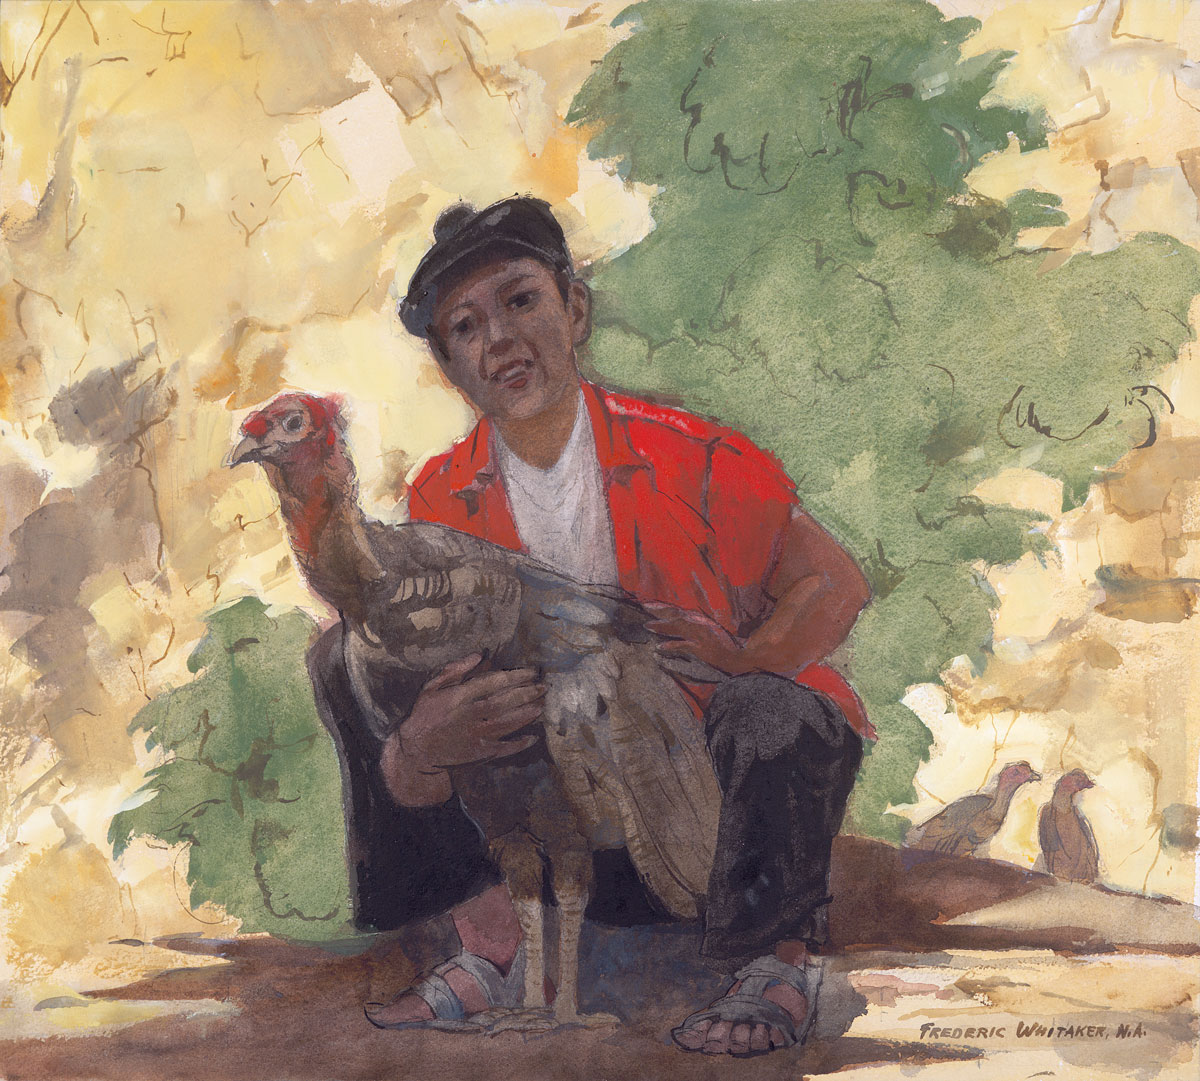 """Boy with Turkey"" 1971 © Frederic Whitaker N.A. 22x24.5 inches Watercolor"